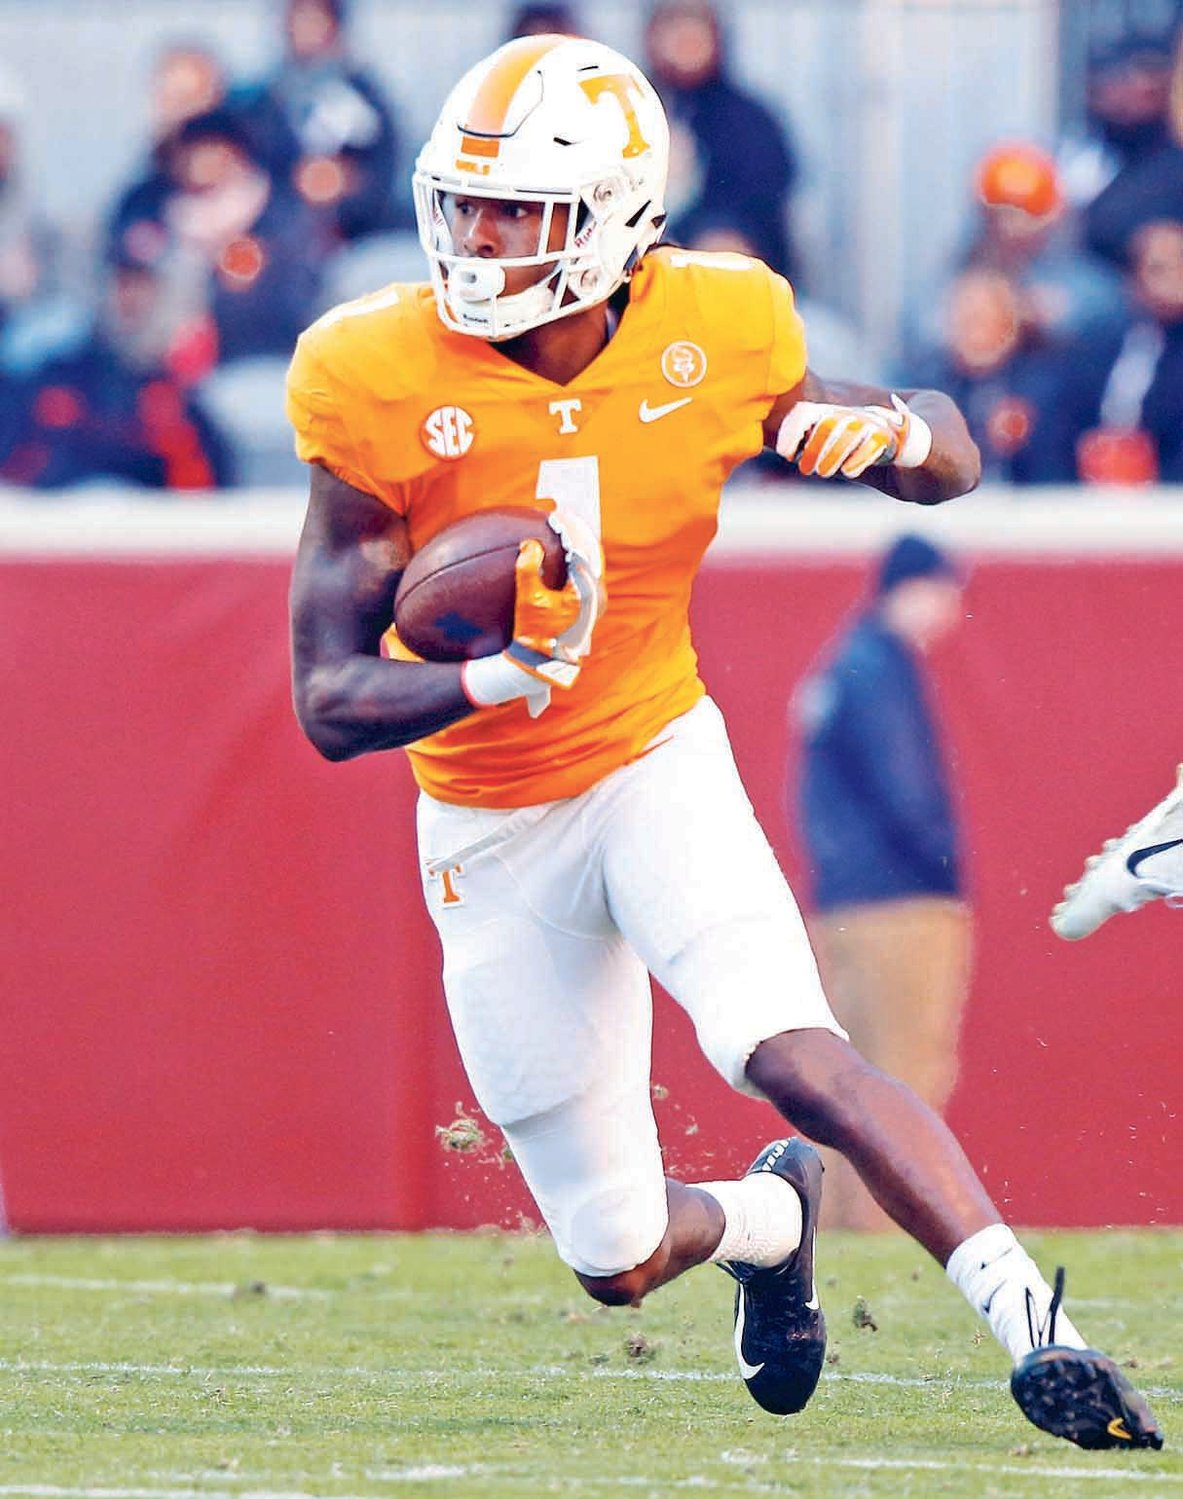 VOLUNTEERS wide receiver Marquez Callaway runs against Kentucky, in Knoxville in this 2018 photo.